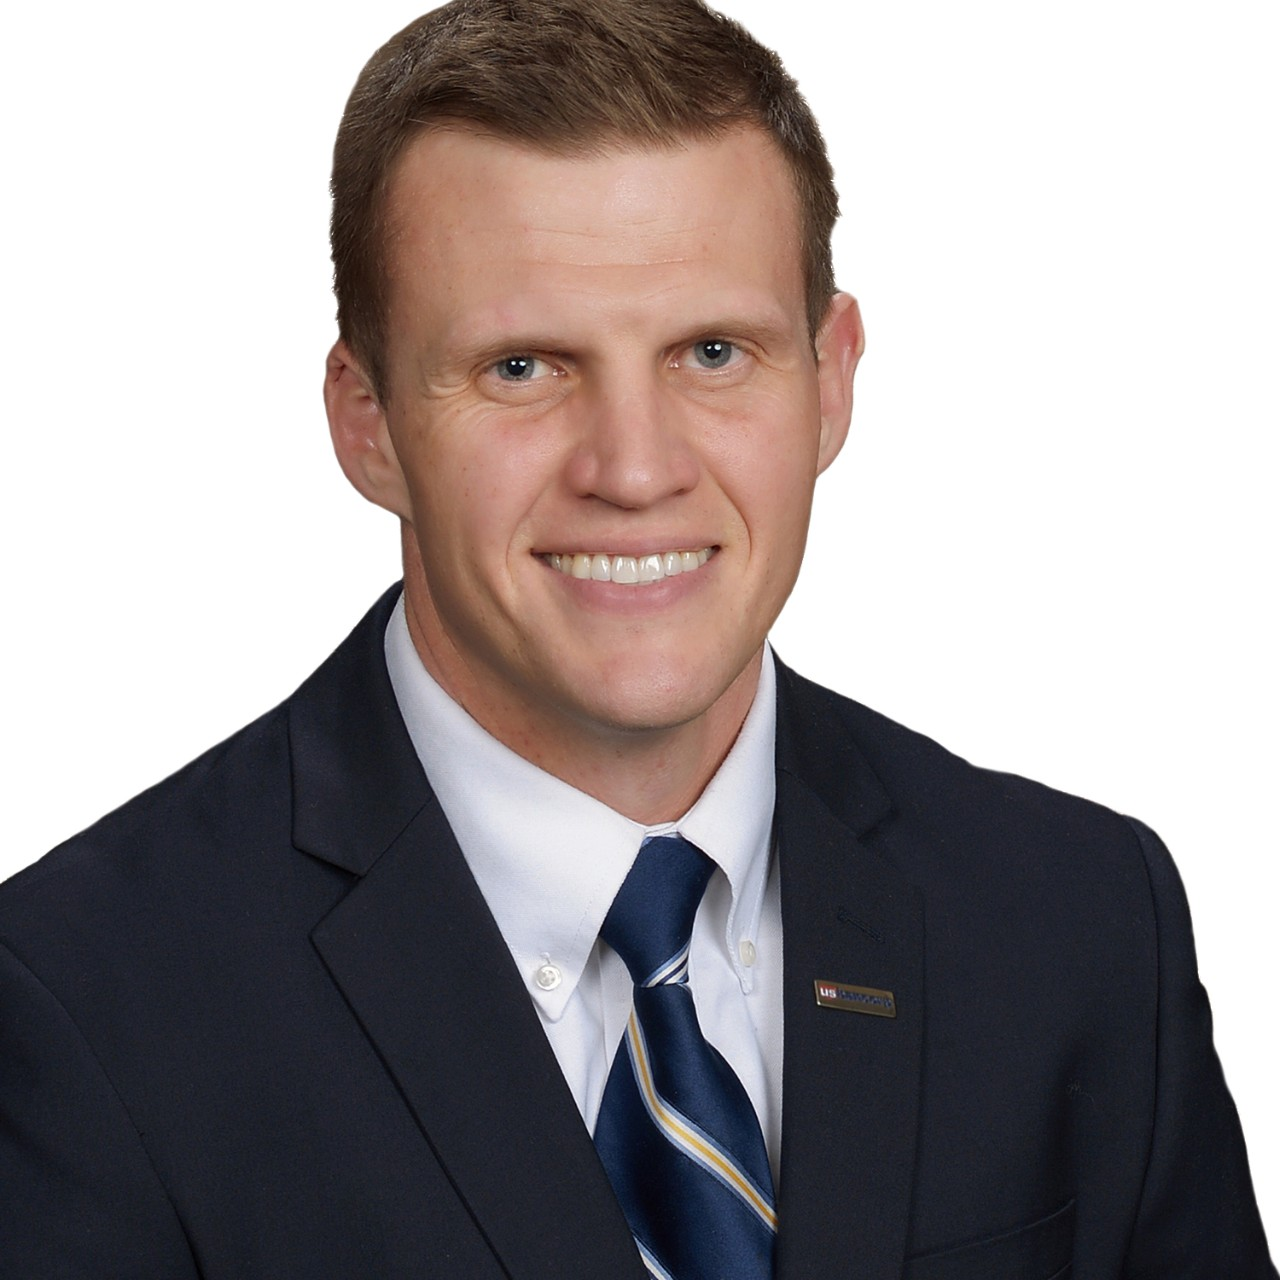 Scott Burnside | Financial Advisor | Idaho Falls, ID | U.S. Bancorp Wealth Management